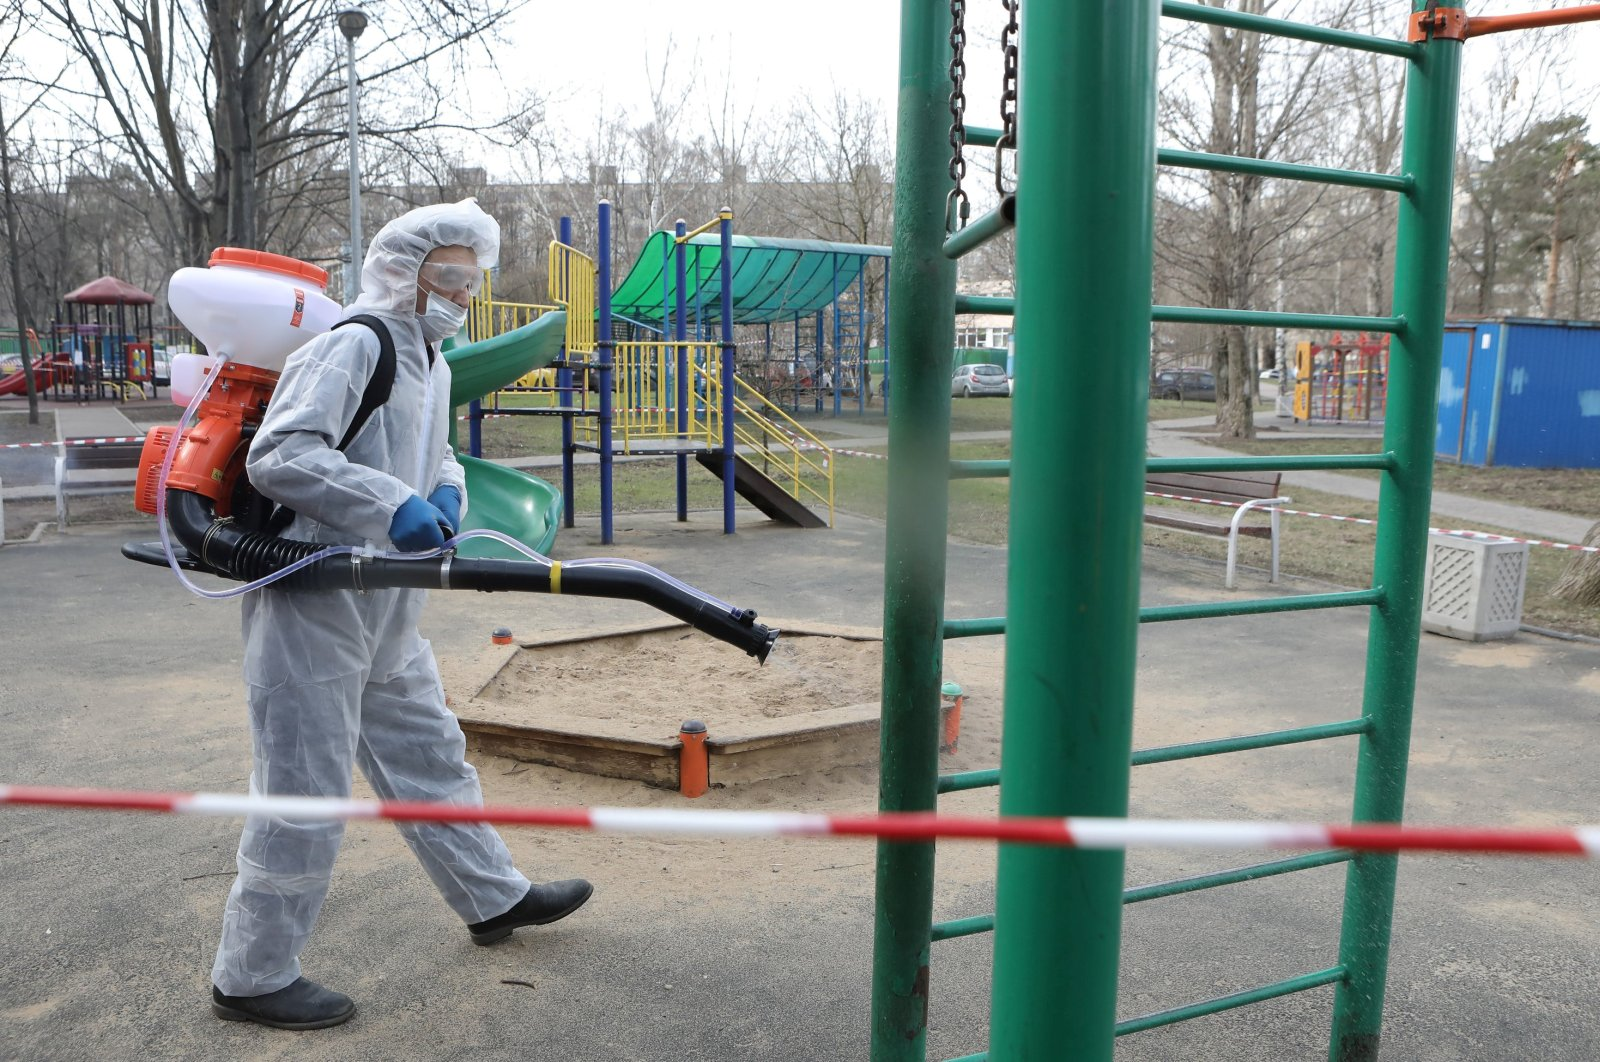 A specialist wearing protective gear sprays disinfectant a playground to prevent the spread of the coronavirus disease (COVID-19) in Moscow, Russia, Sunday, April 5, 2020. (Reuters Photo)